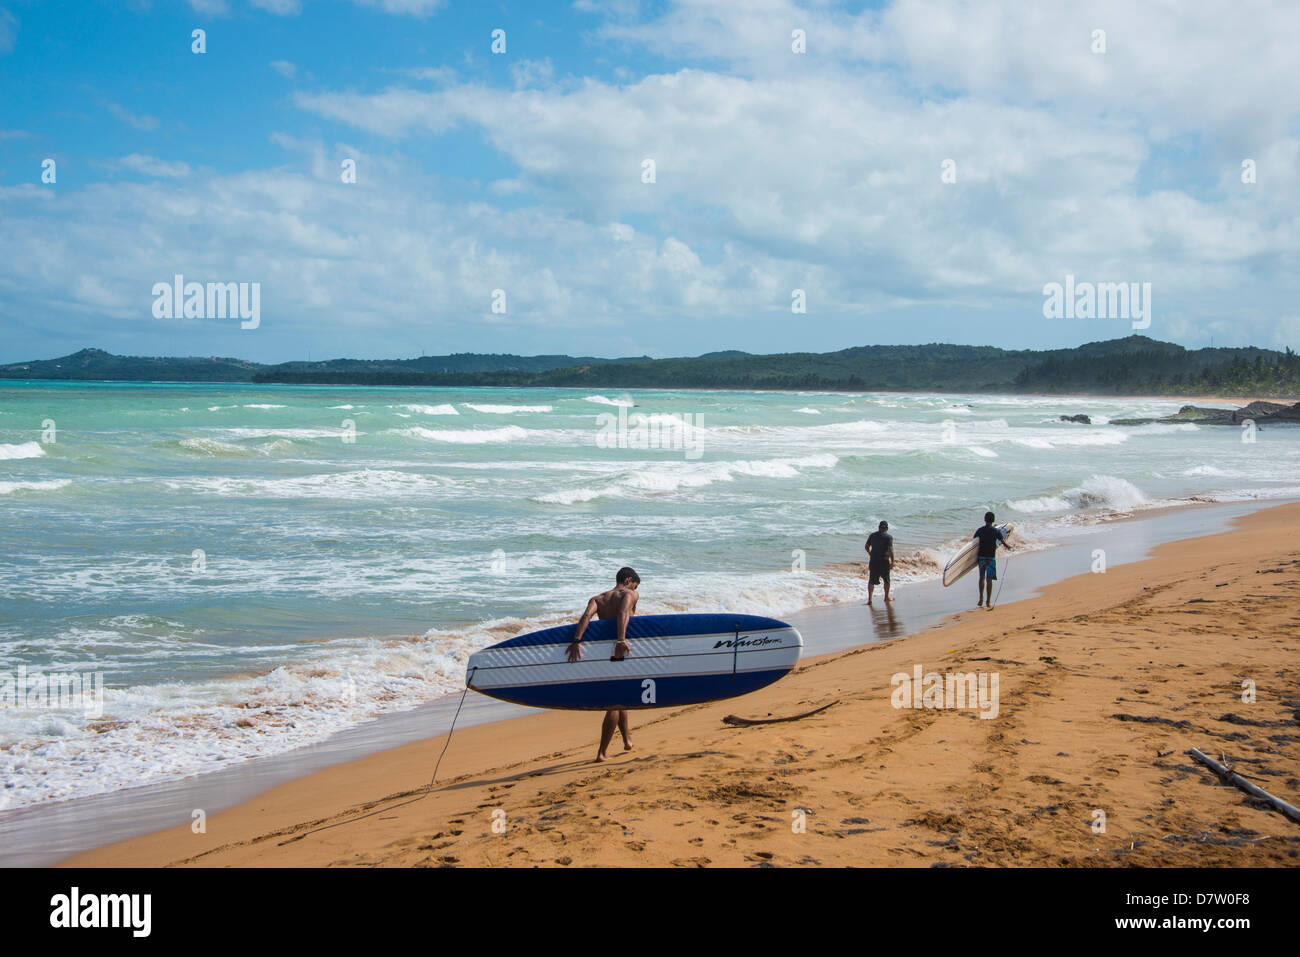 Surfer on Luquillo Beach, Puerto Rico, West Indies, Caribbean - Stock Image